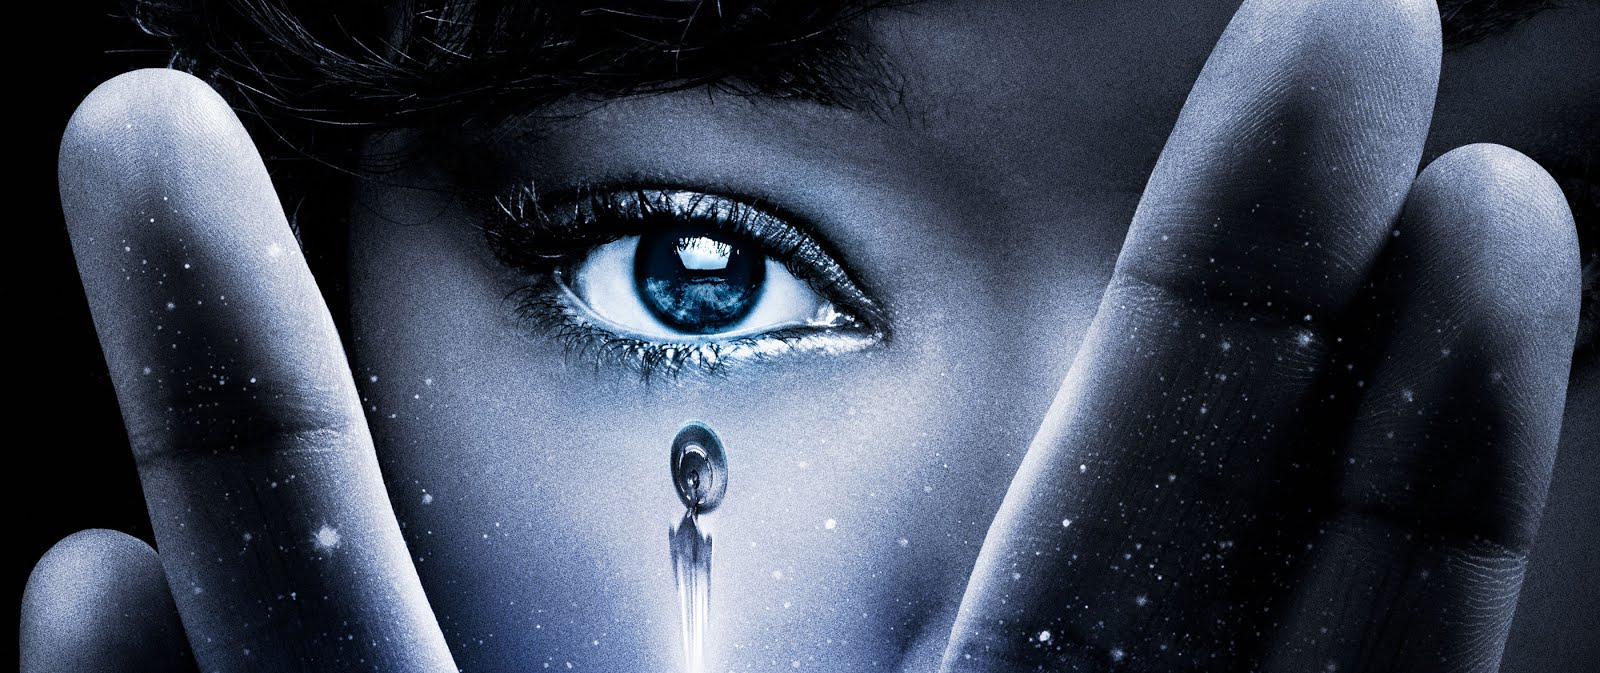 Incoming transmission from Starfleet!